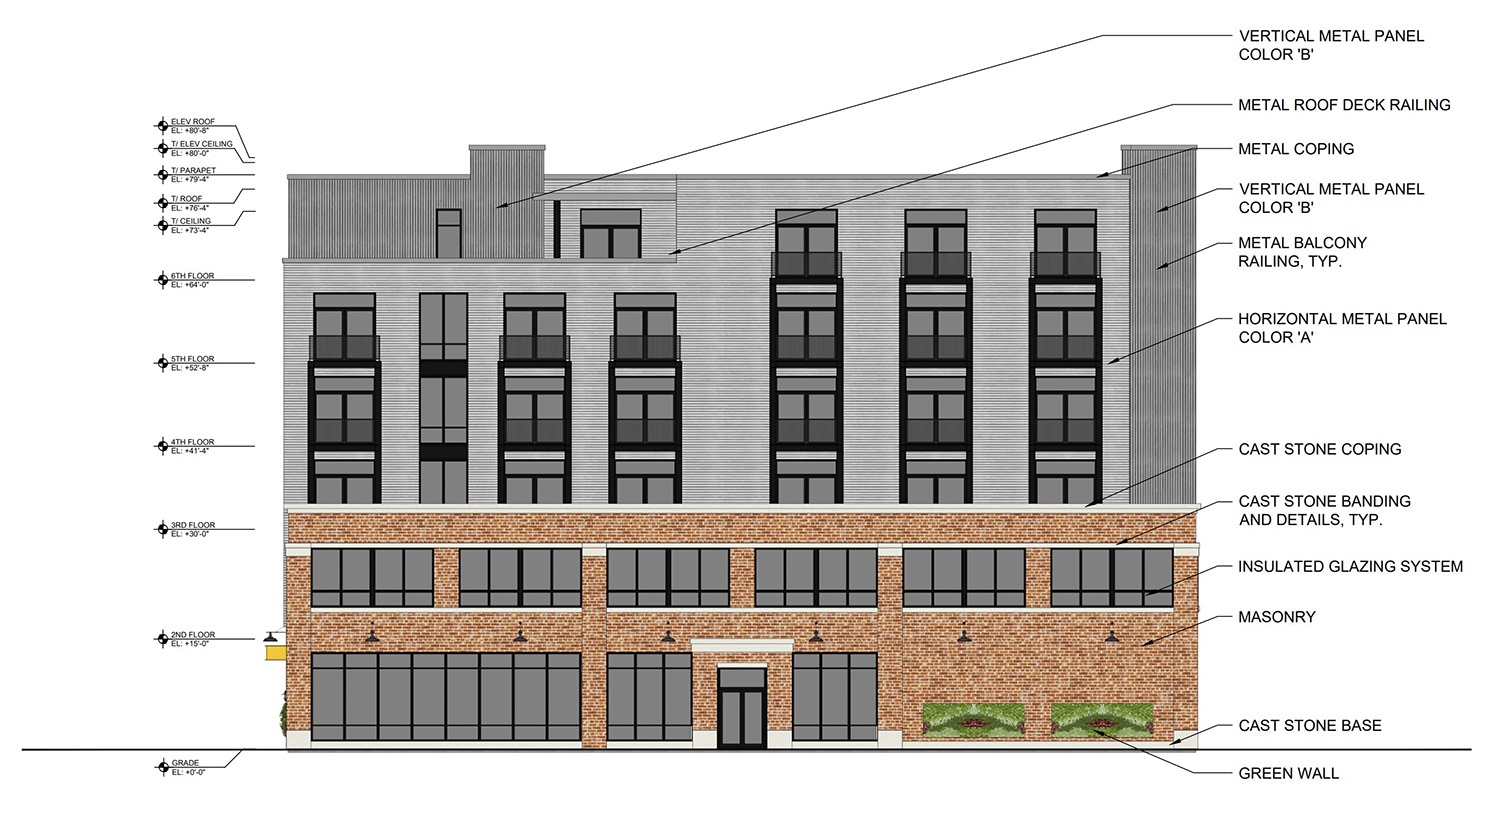 East Elevation of 1800 W Berenice Avenue. Drawing by Sullivan Goulette Wilson Architects